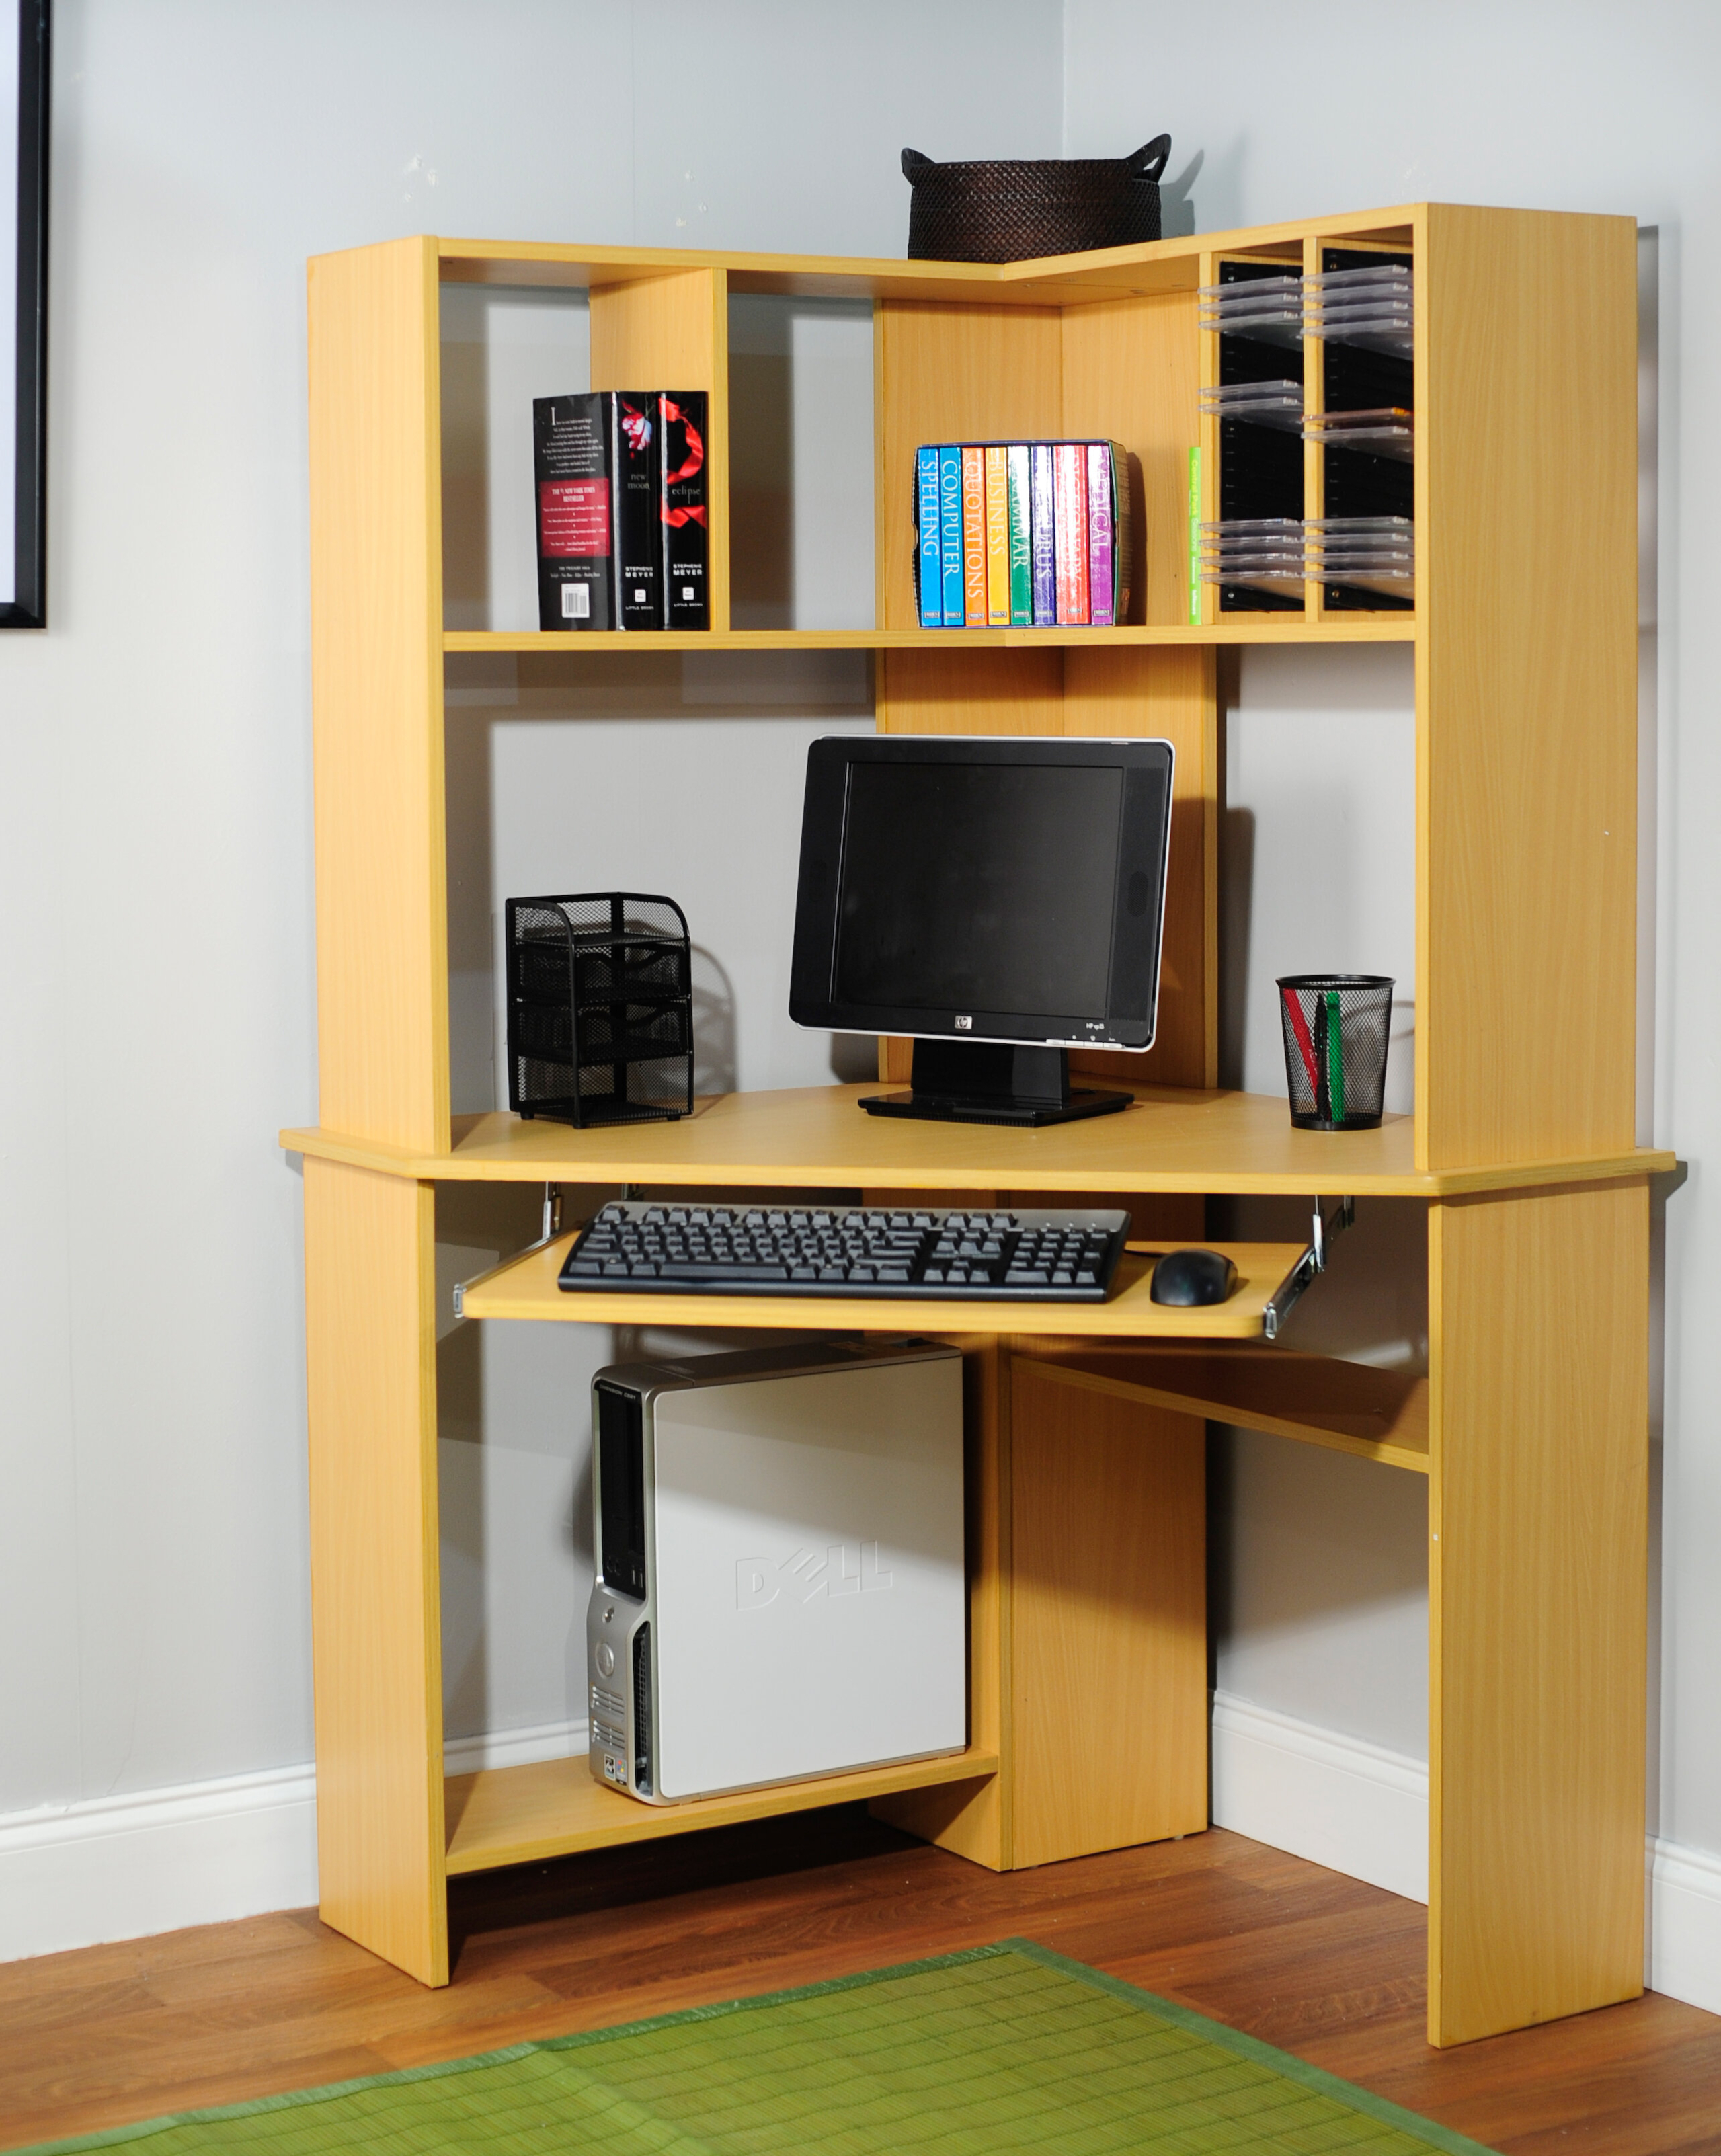 Compact Home Office Desk Intended Corner Desks With Hutch For Home Office Foter Rh Com Compact Home Office Desk With Hutch Urban Interior